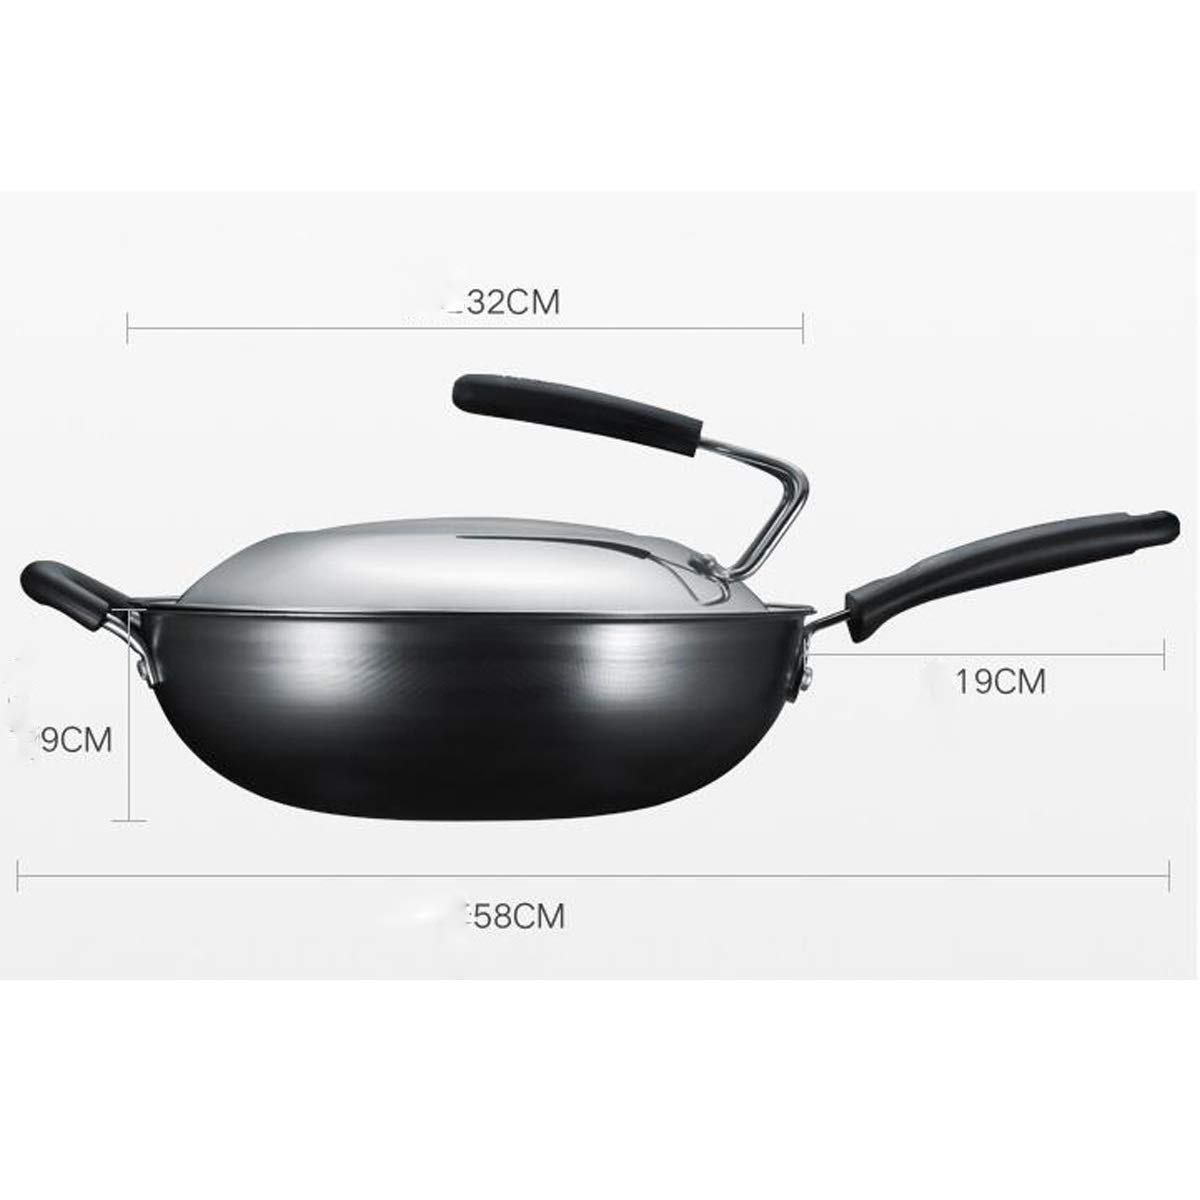 Wok, 32cm Diameter Wok, Really Stainless Uncoated Detachable Lid And Non-standing Lid Healthy Iron Pan, Black (Color : Black-A, Size : A1-32CM) by TONGBOSHI (Image #1)